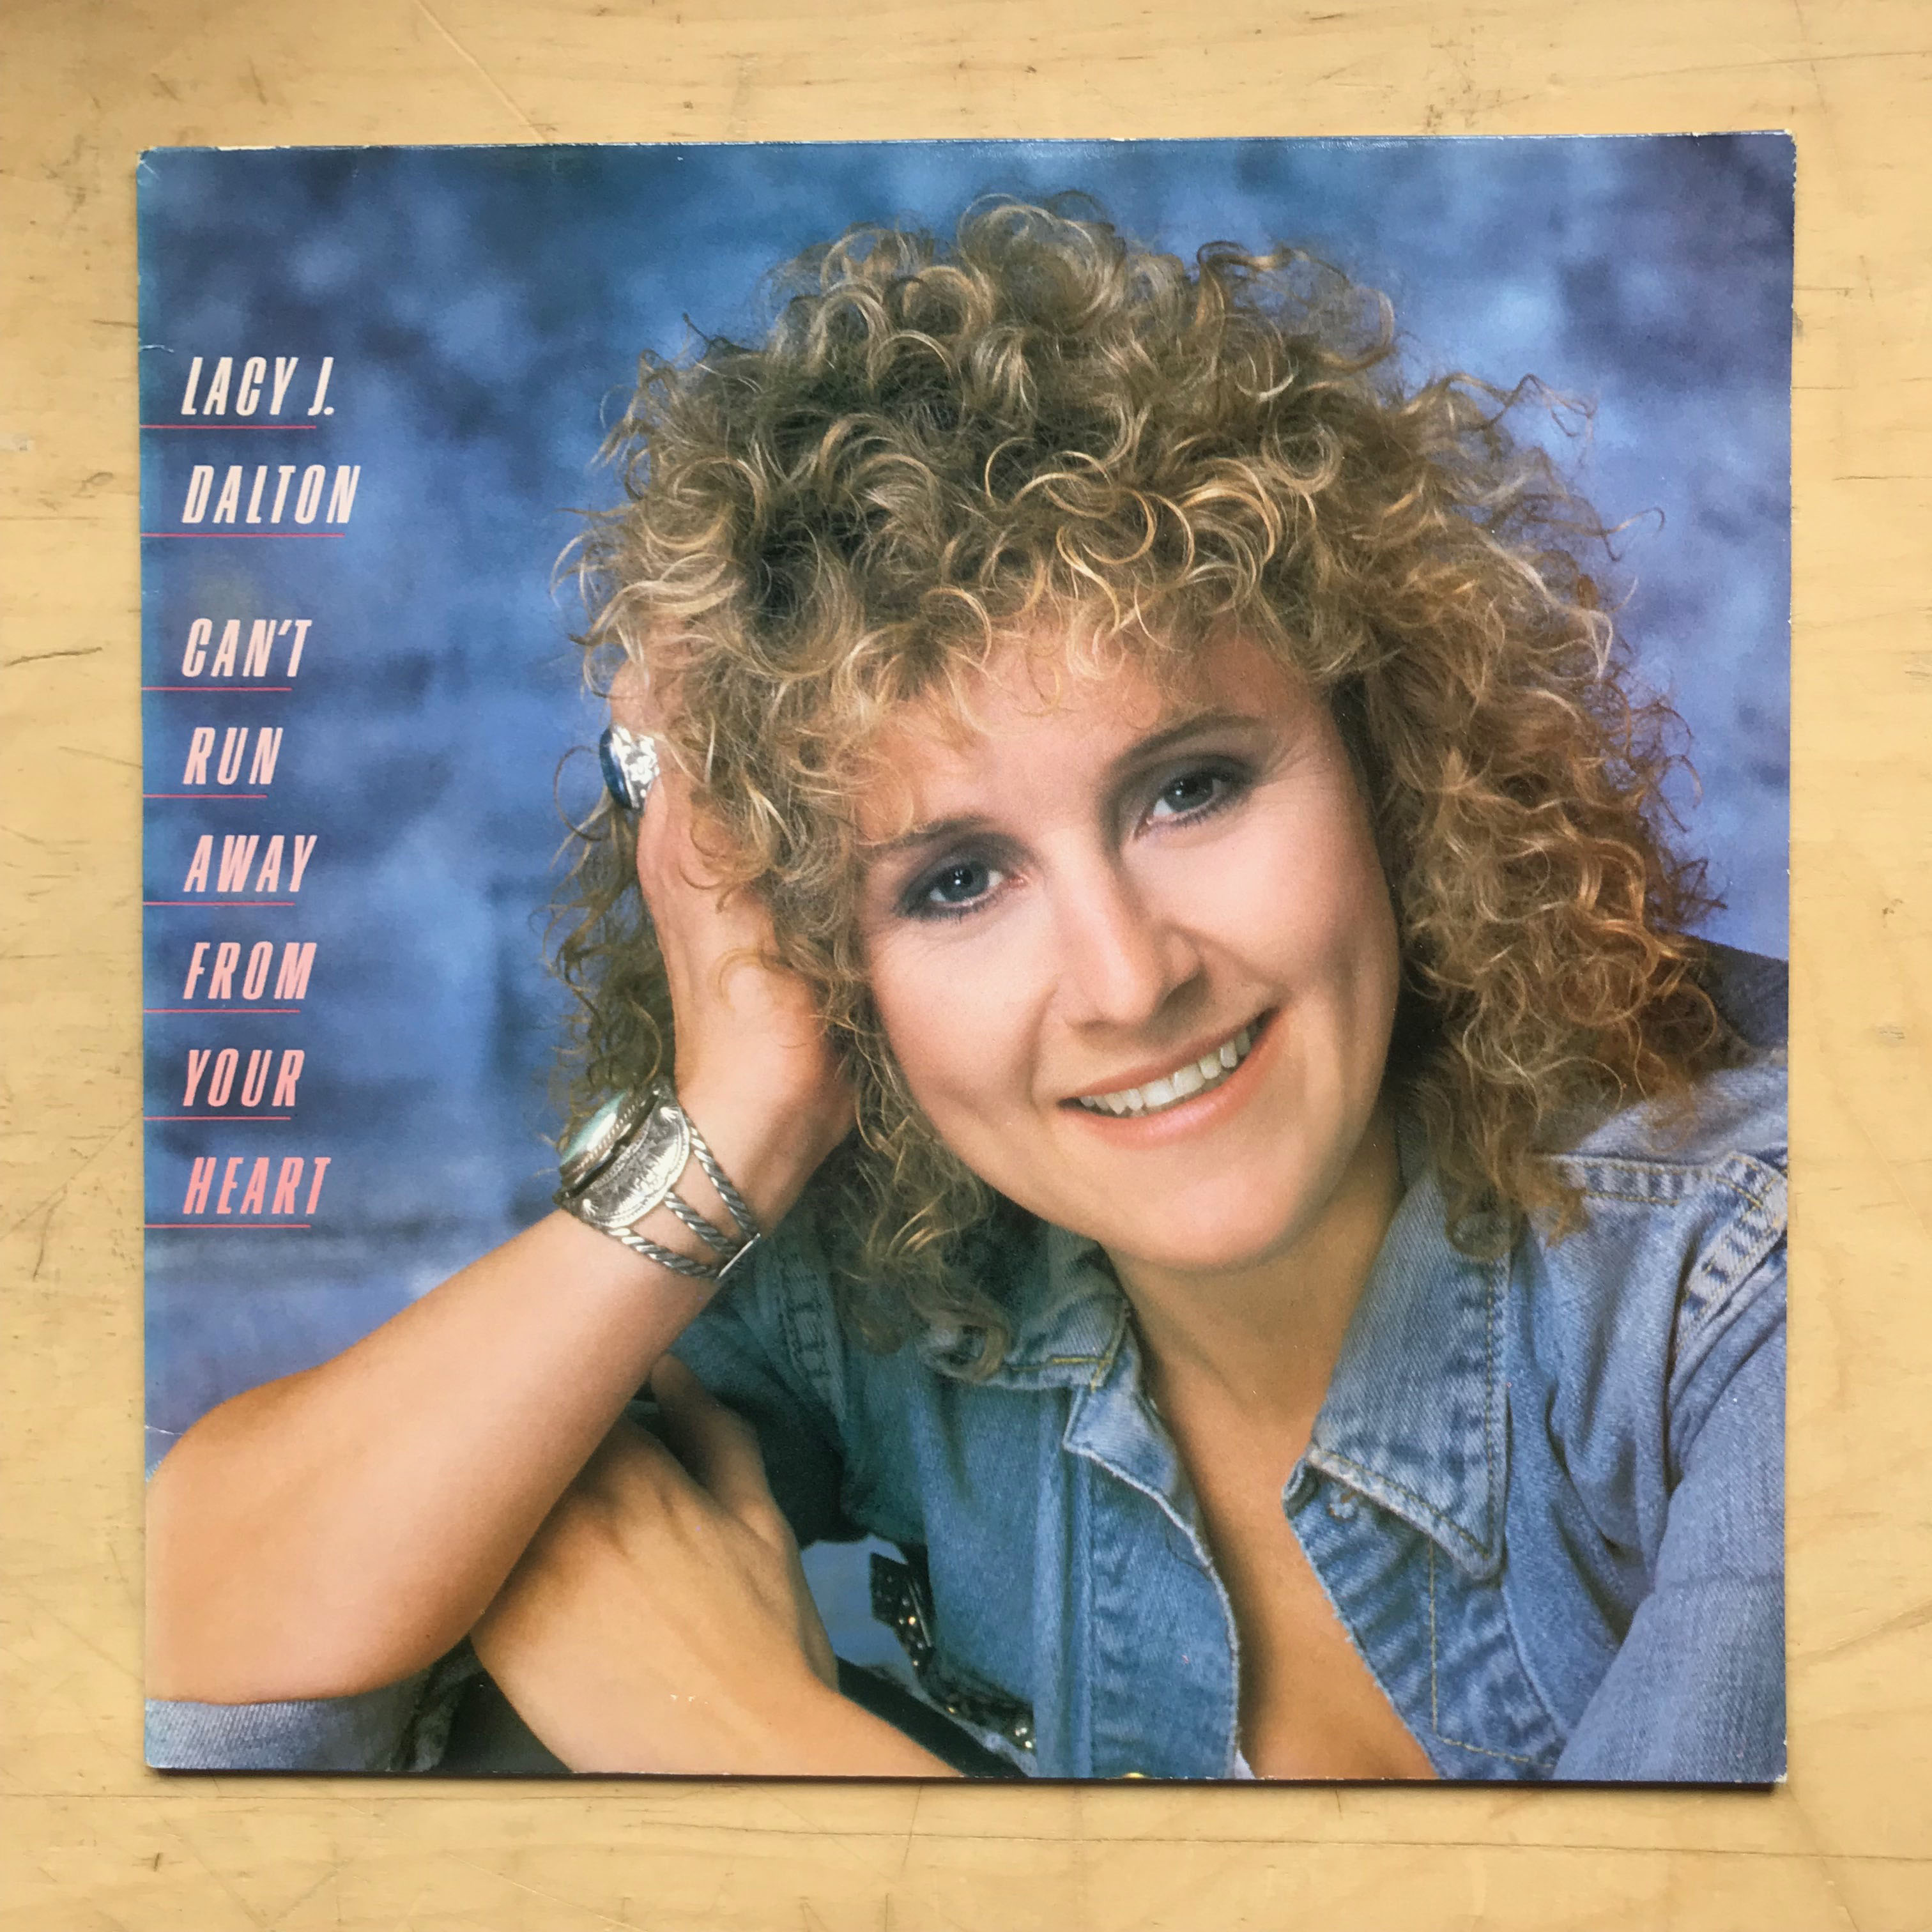 LACY J DALTON - CAN'T RUN AWAY FROM YOUR HEART